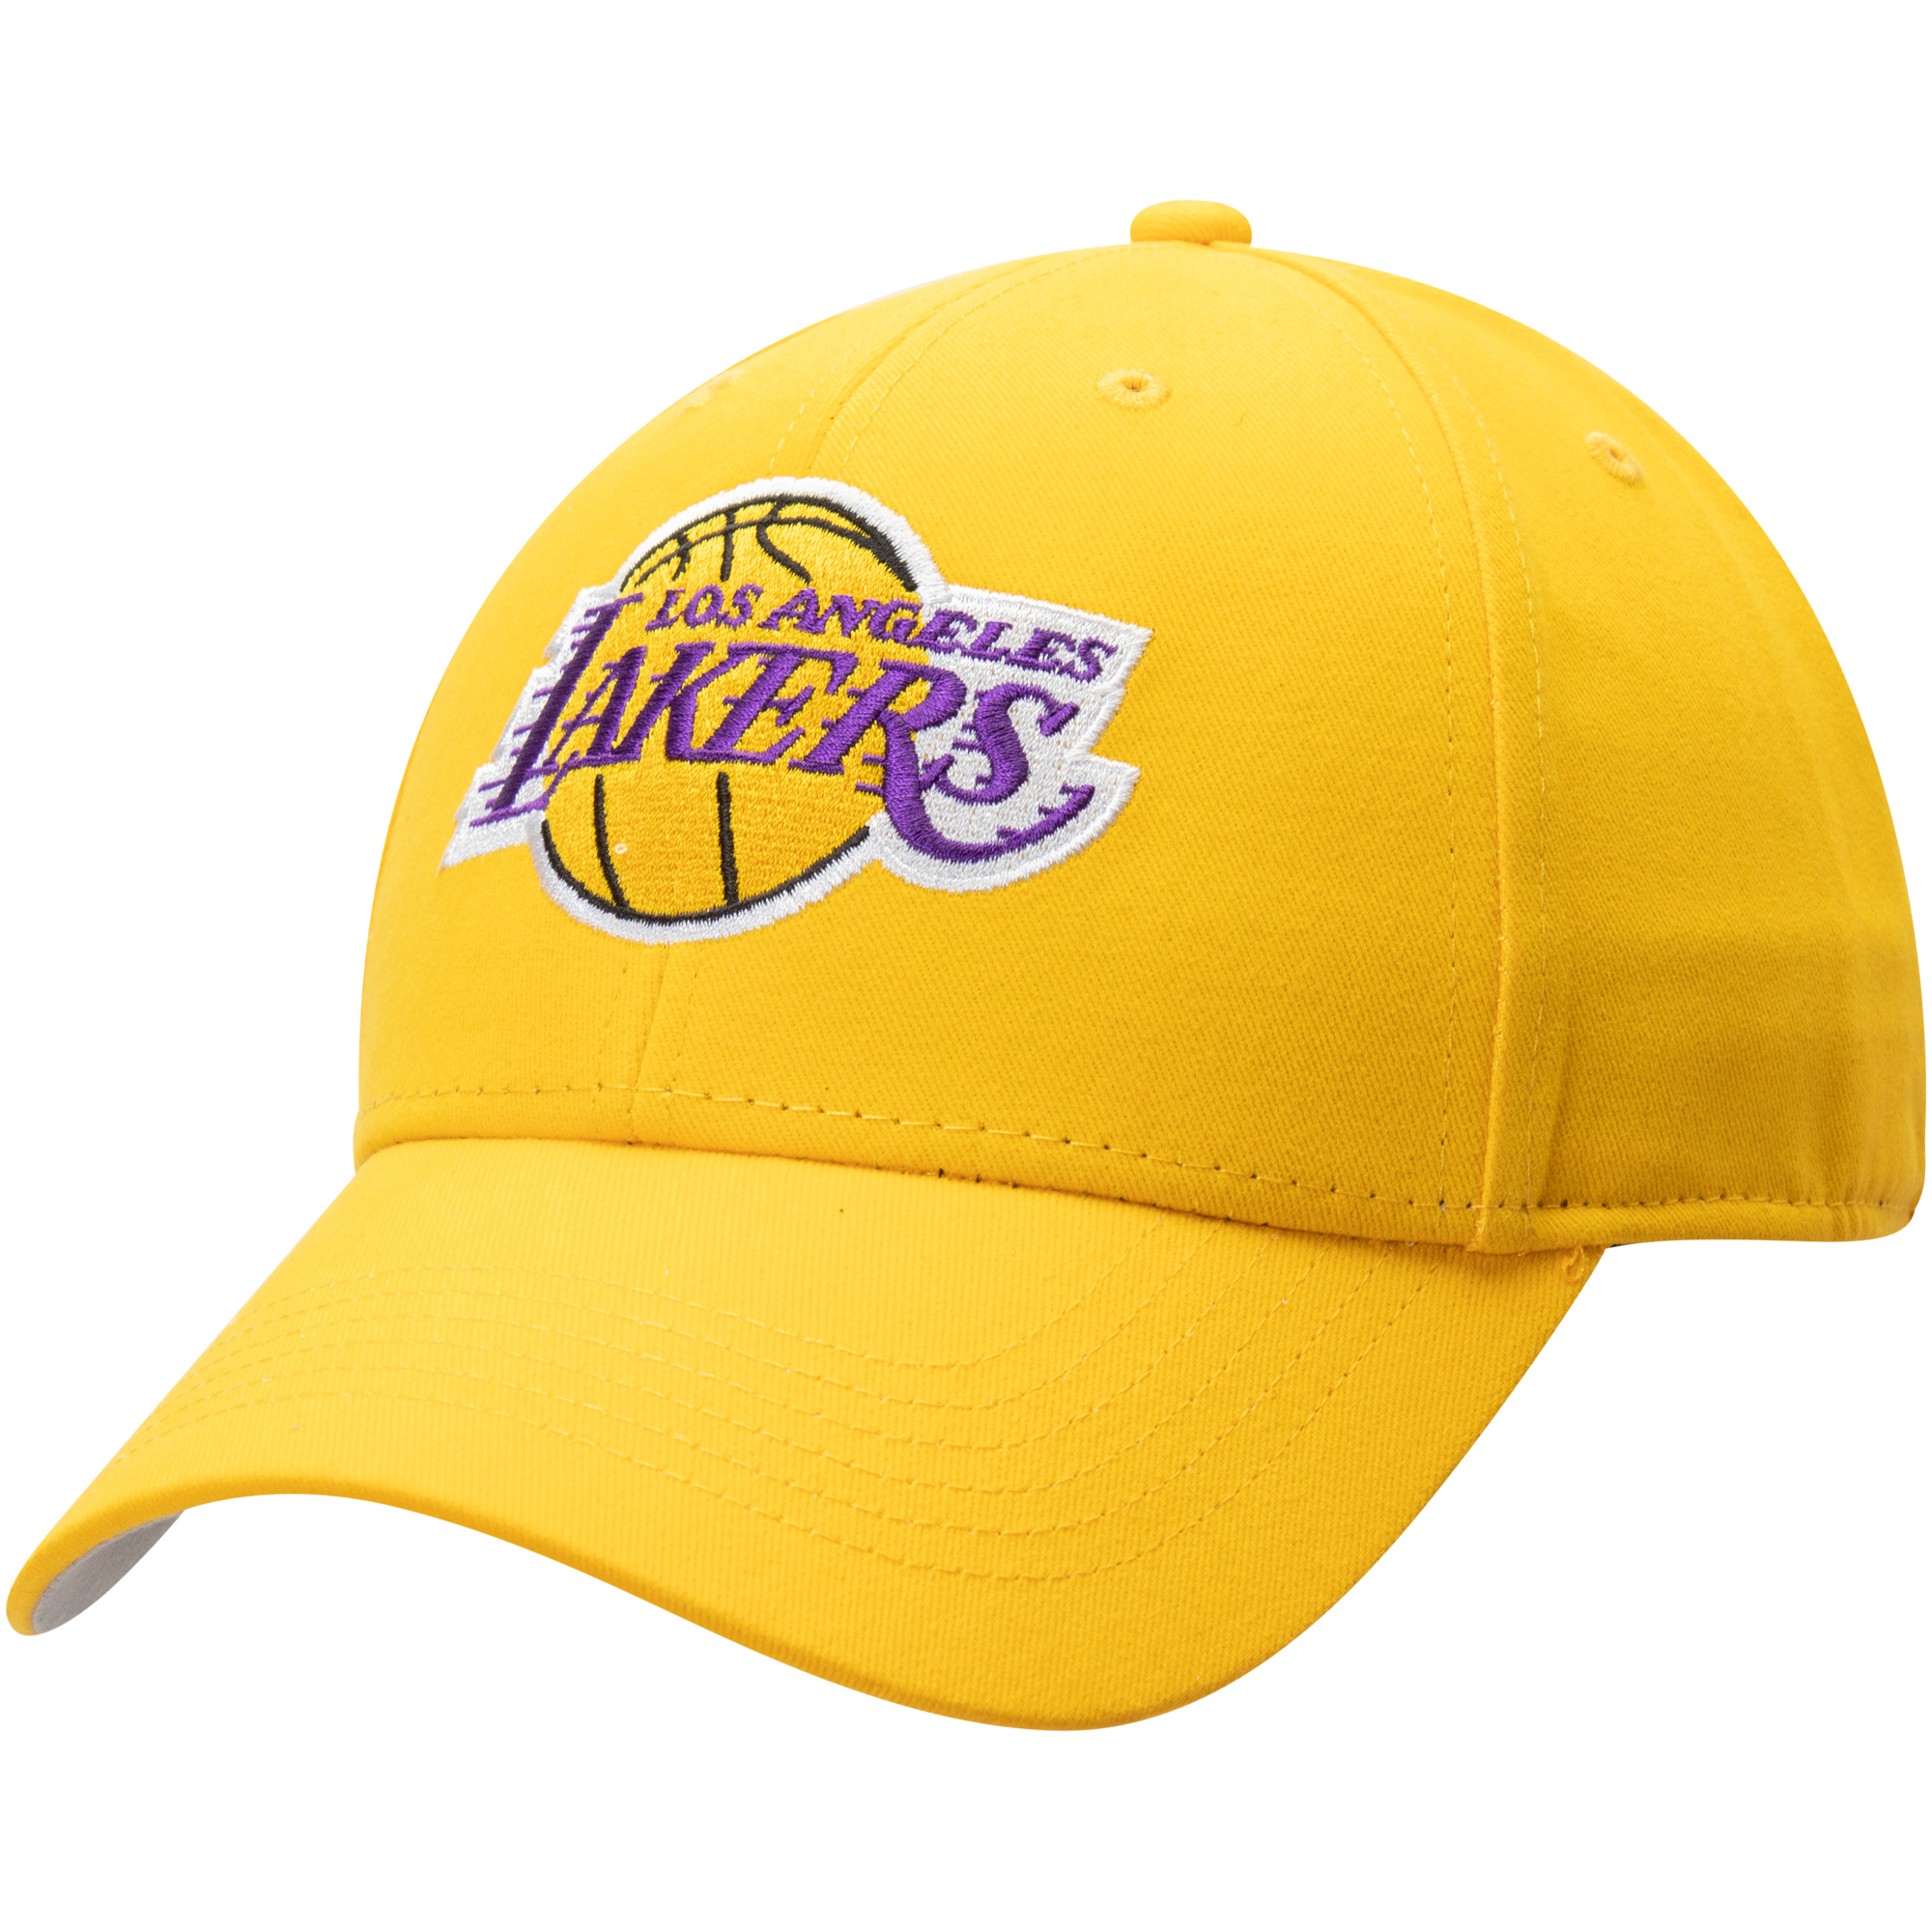 Men's Gold Los Angeles Lakers Mass Basic Adjustable Hat - OSFA